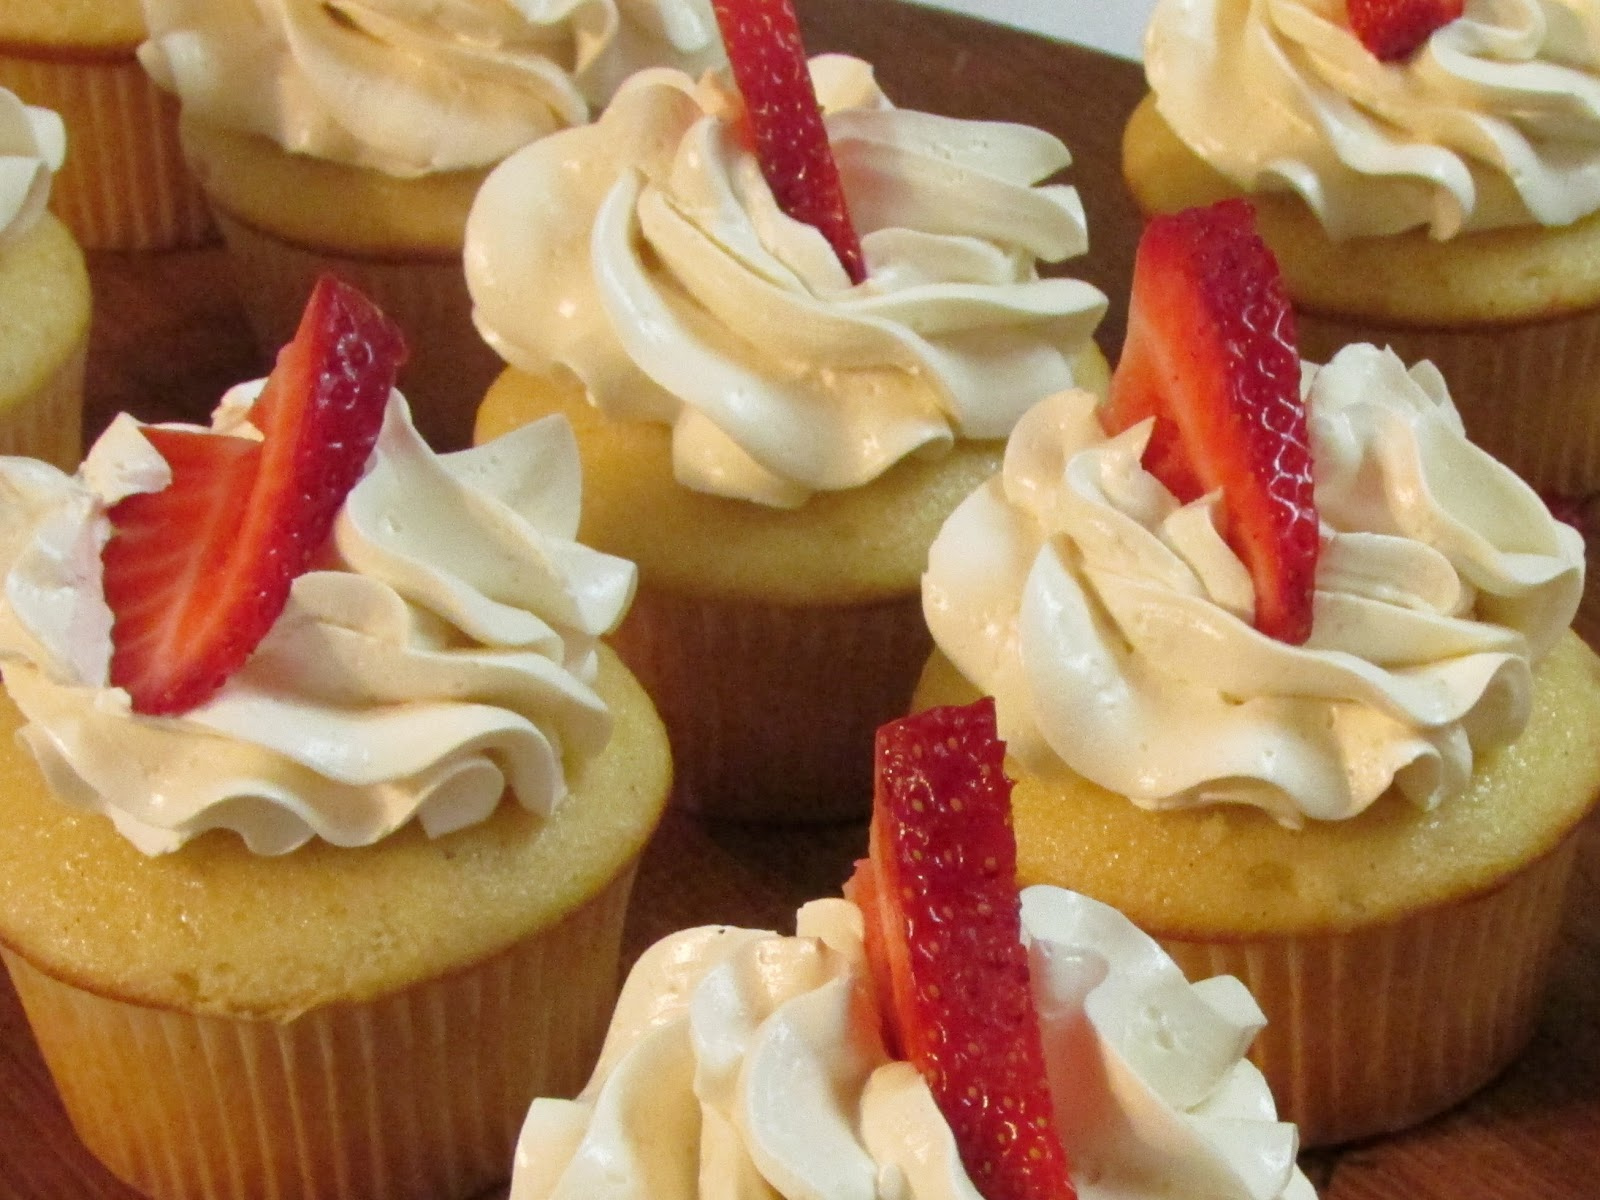 Strawberry Surprise Cupcakes Recipes — Dishmaps